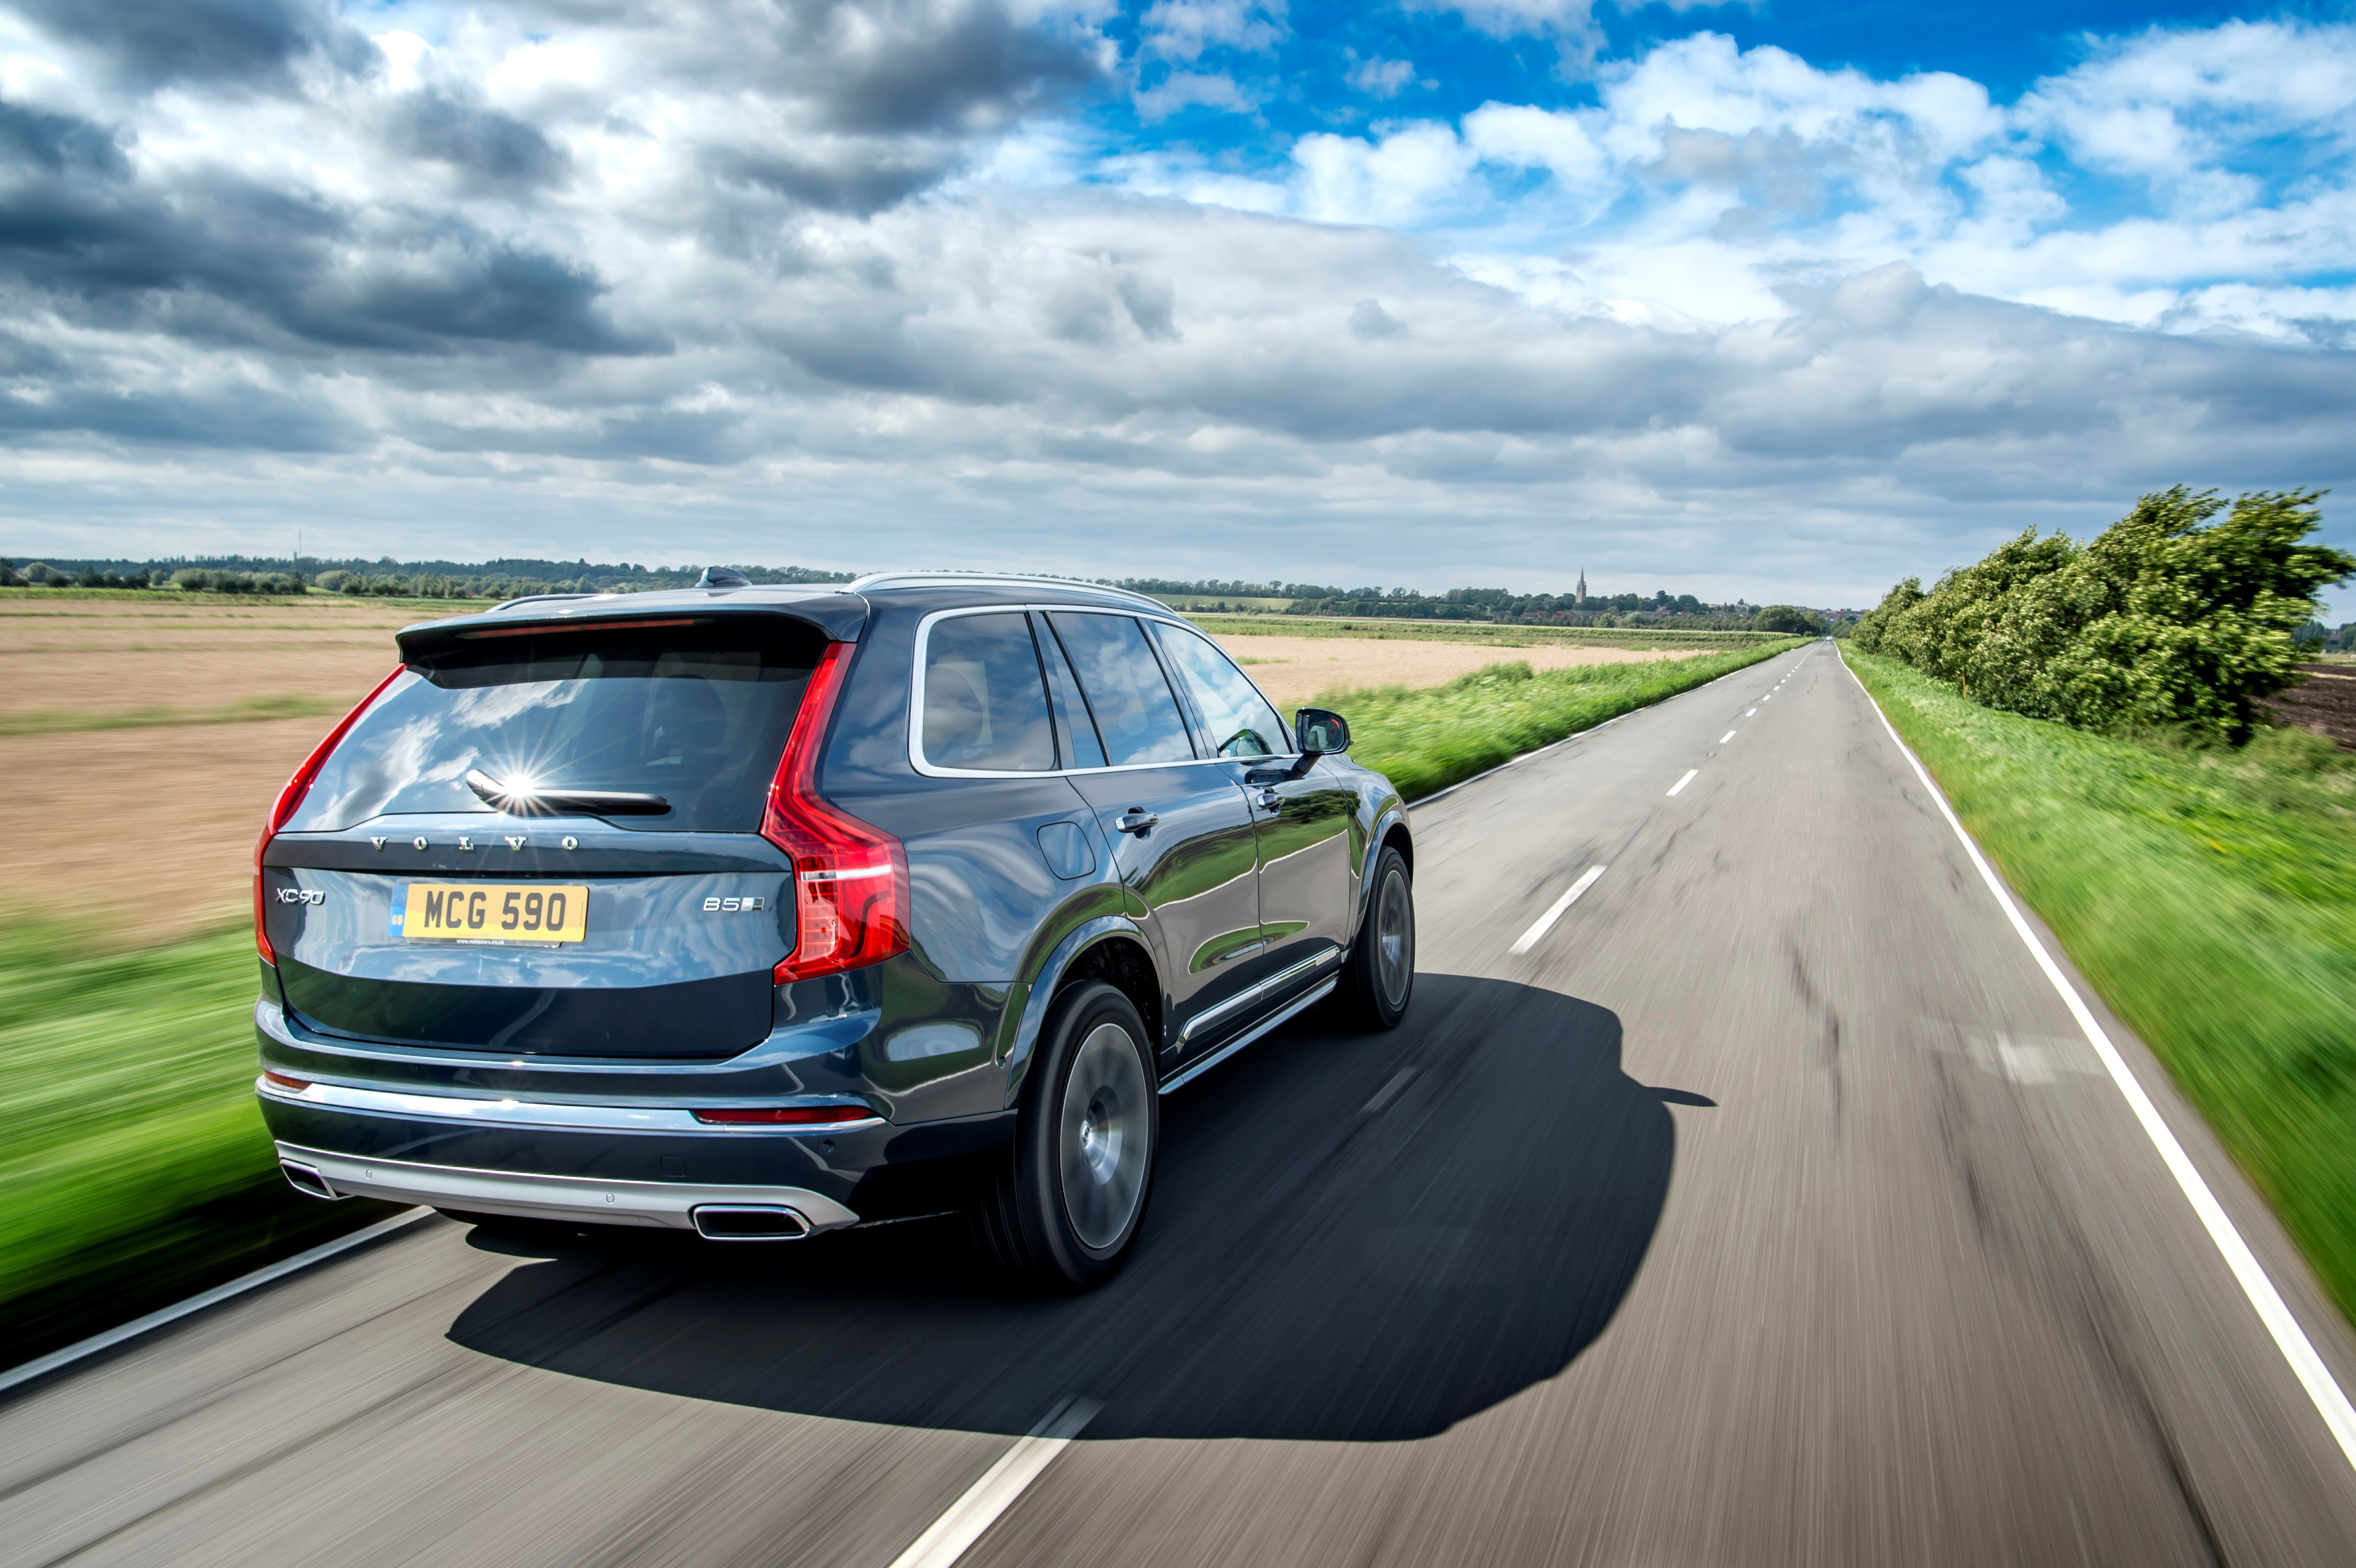 Long journeys are where the XC90 feels most at home